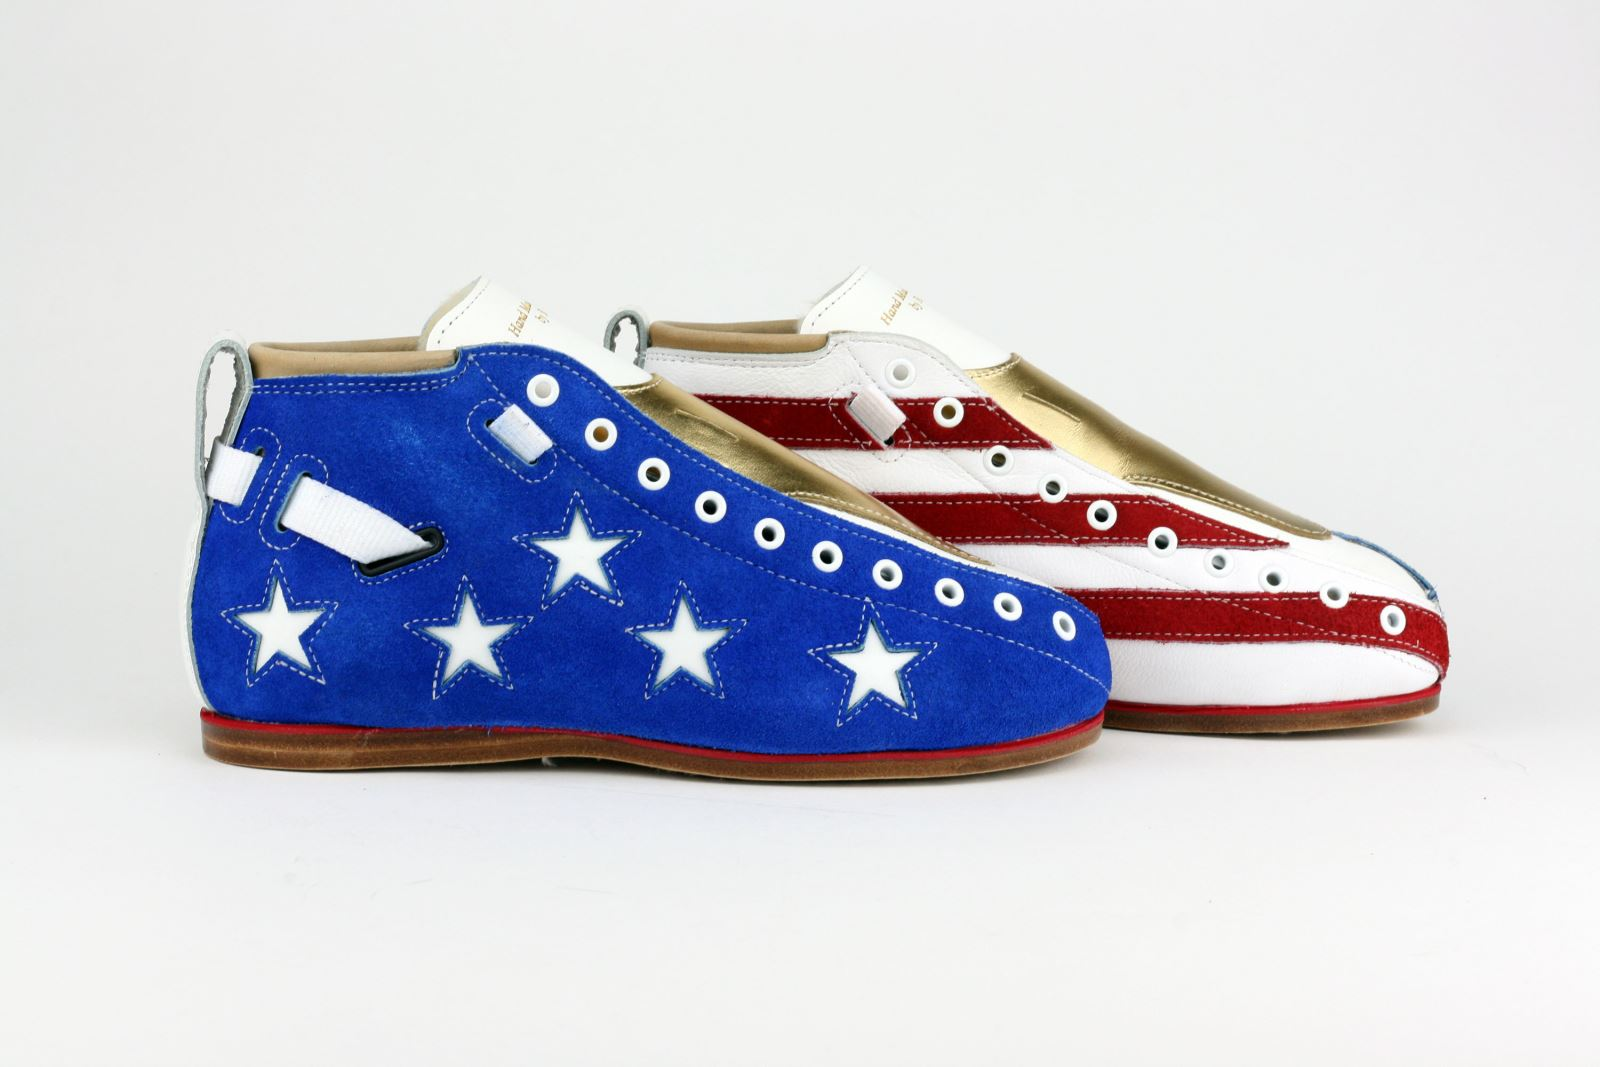 Riedell Superstar Jackie Daniels' Custom Solaris - Team USA Stars and Stripes